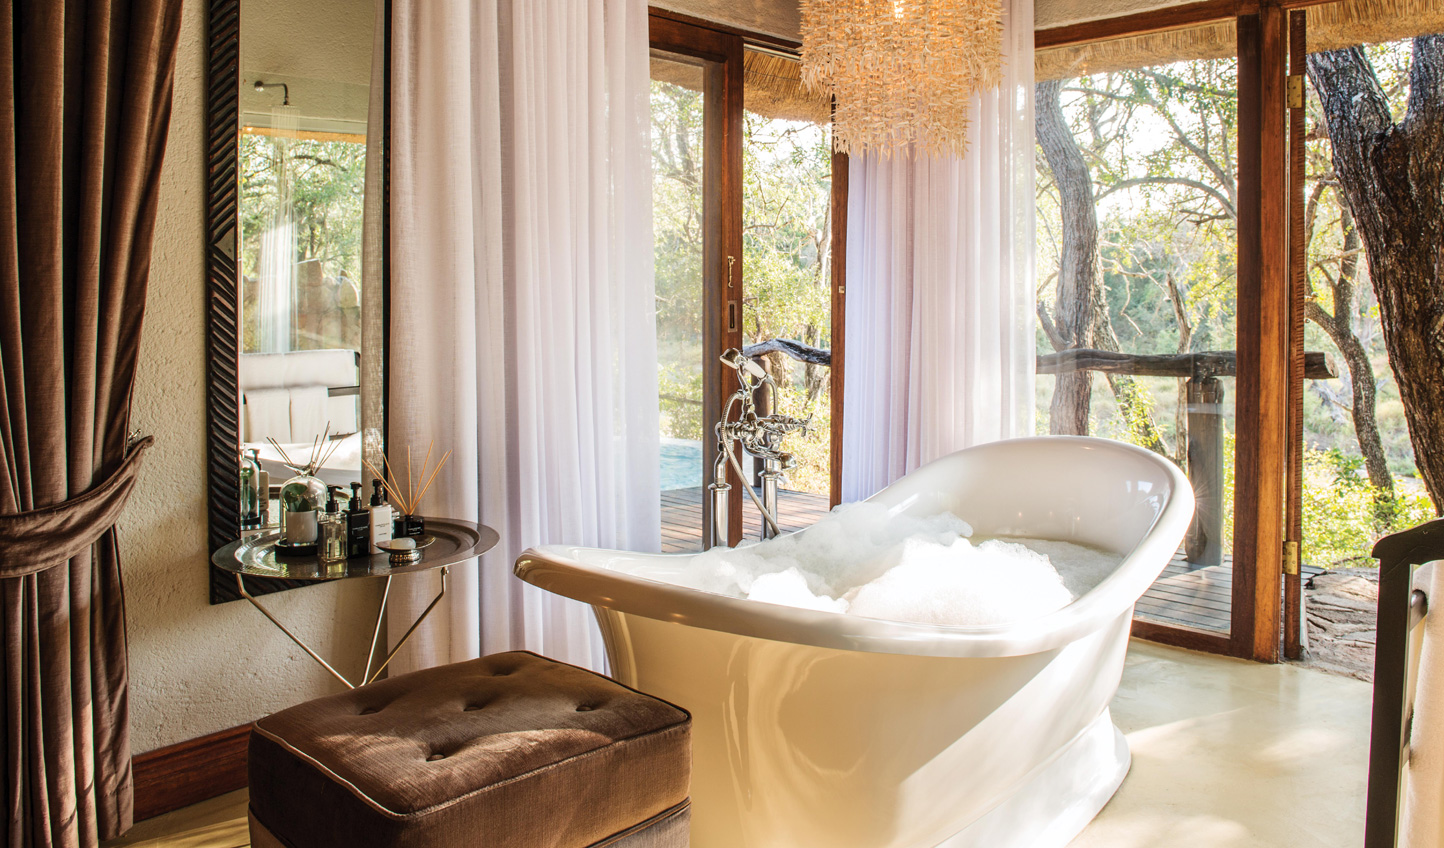 Pamper yourself with a large and luxurious bathroom